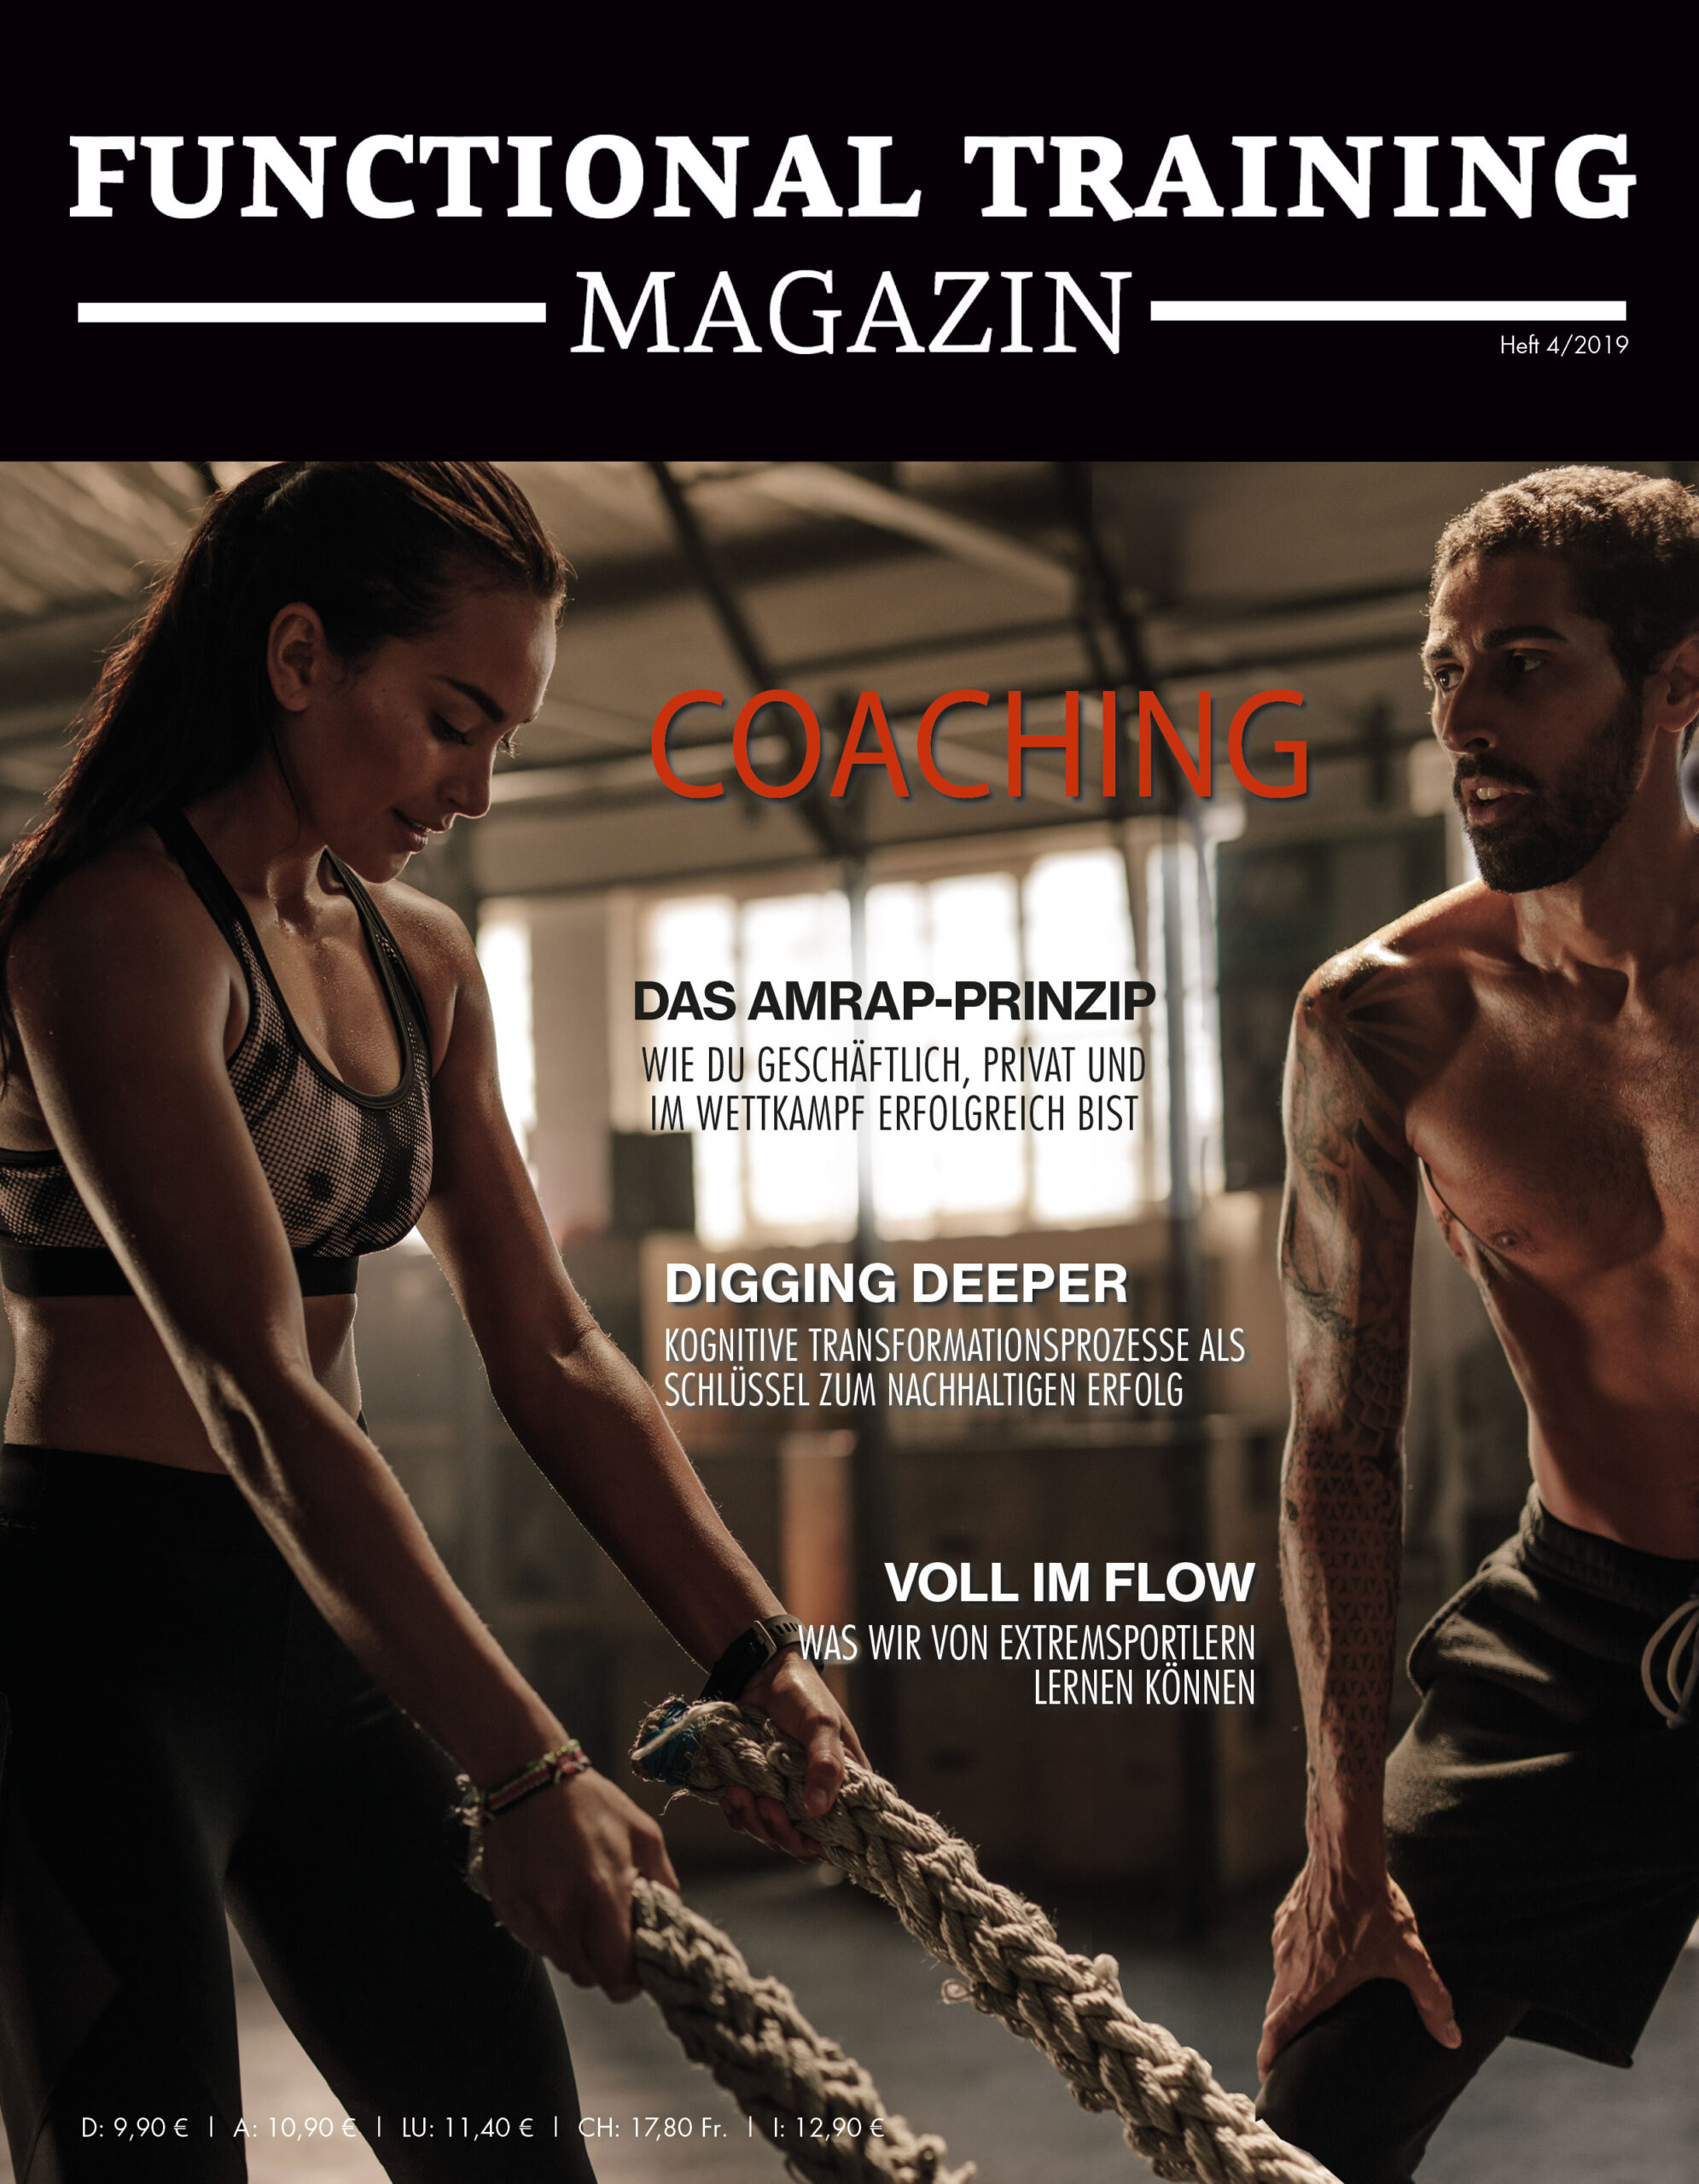 ftm-4-2019-cover-coaching-functional-training-magazin